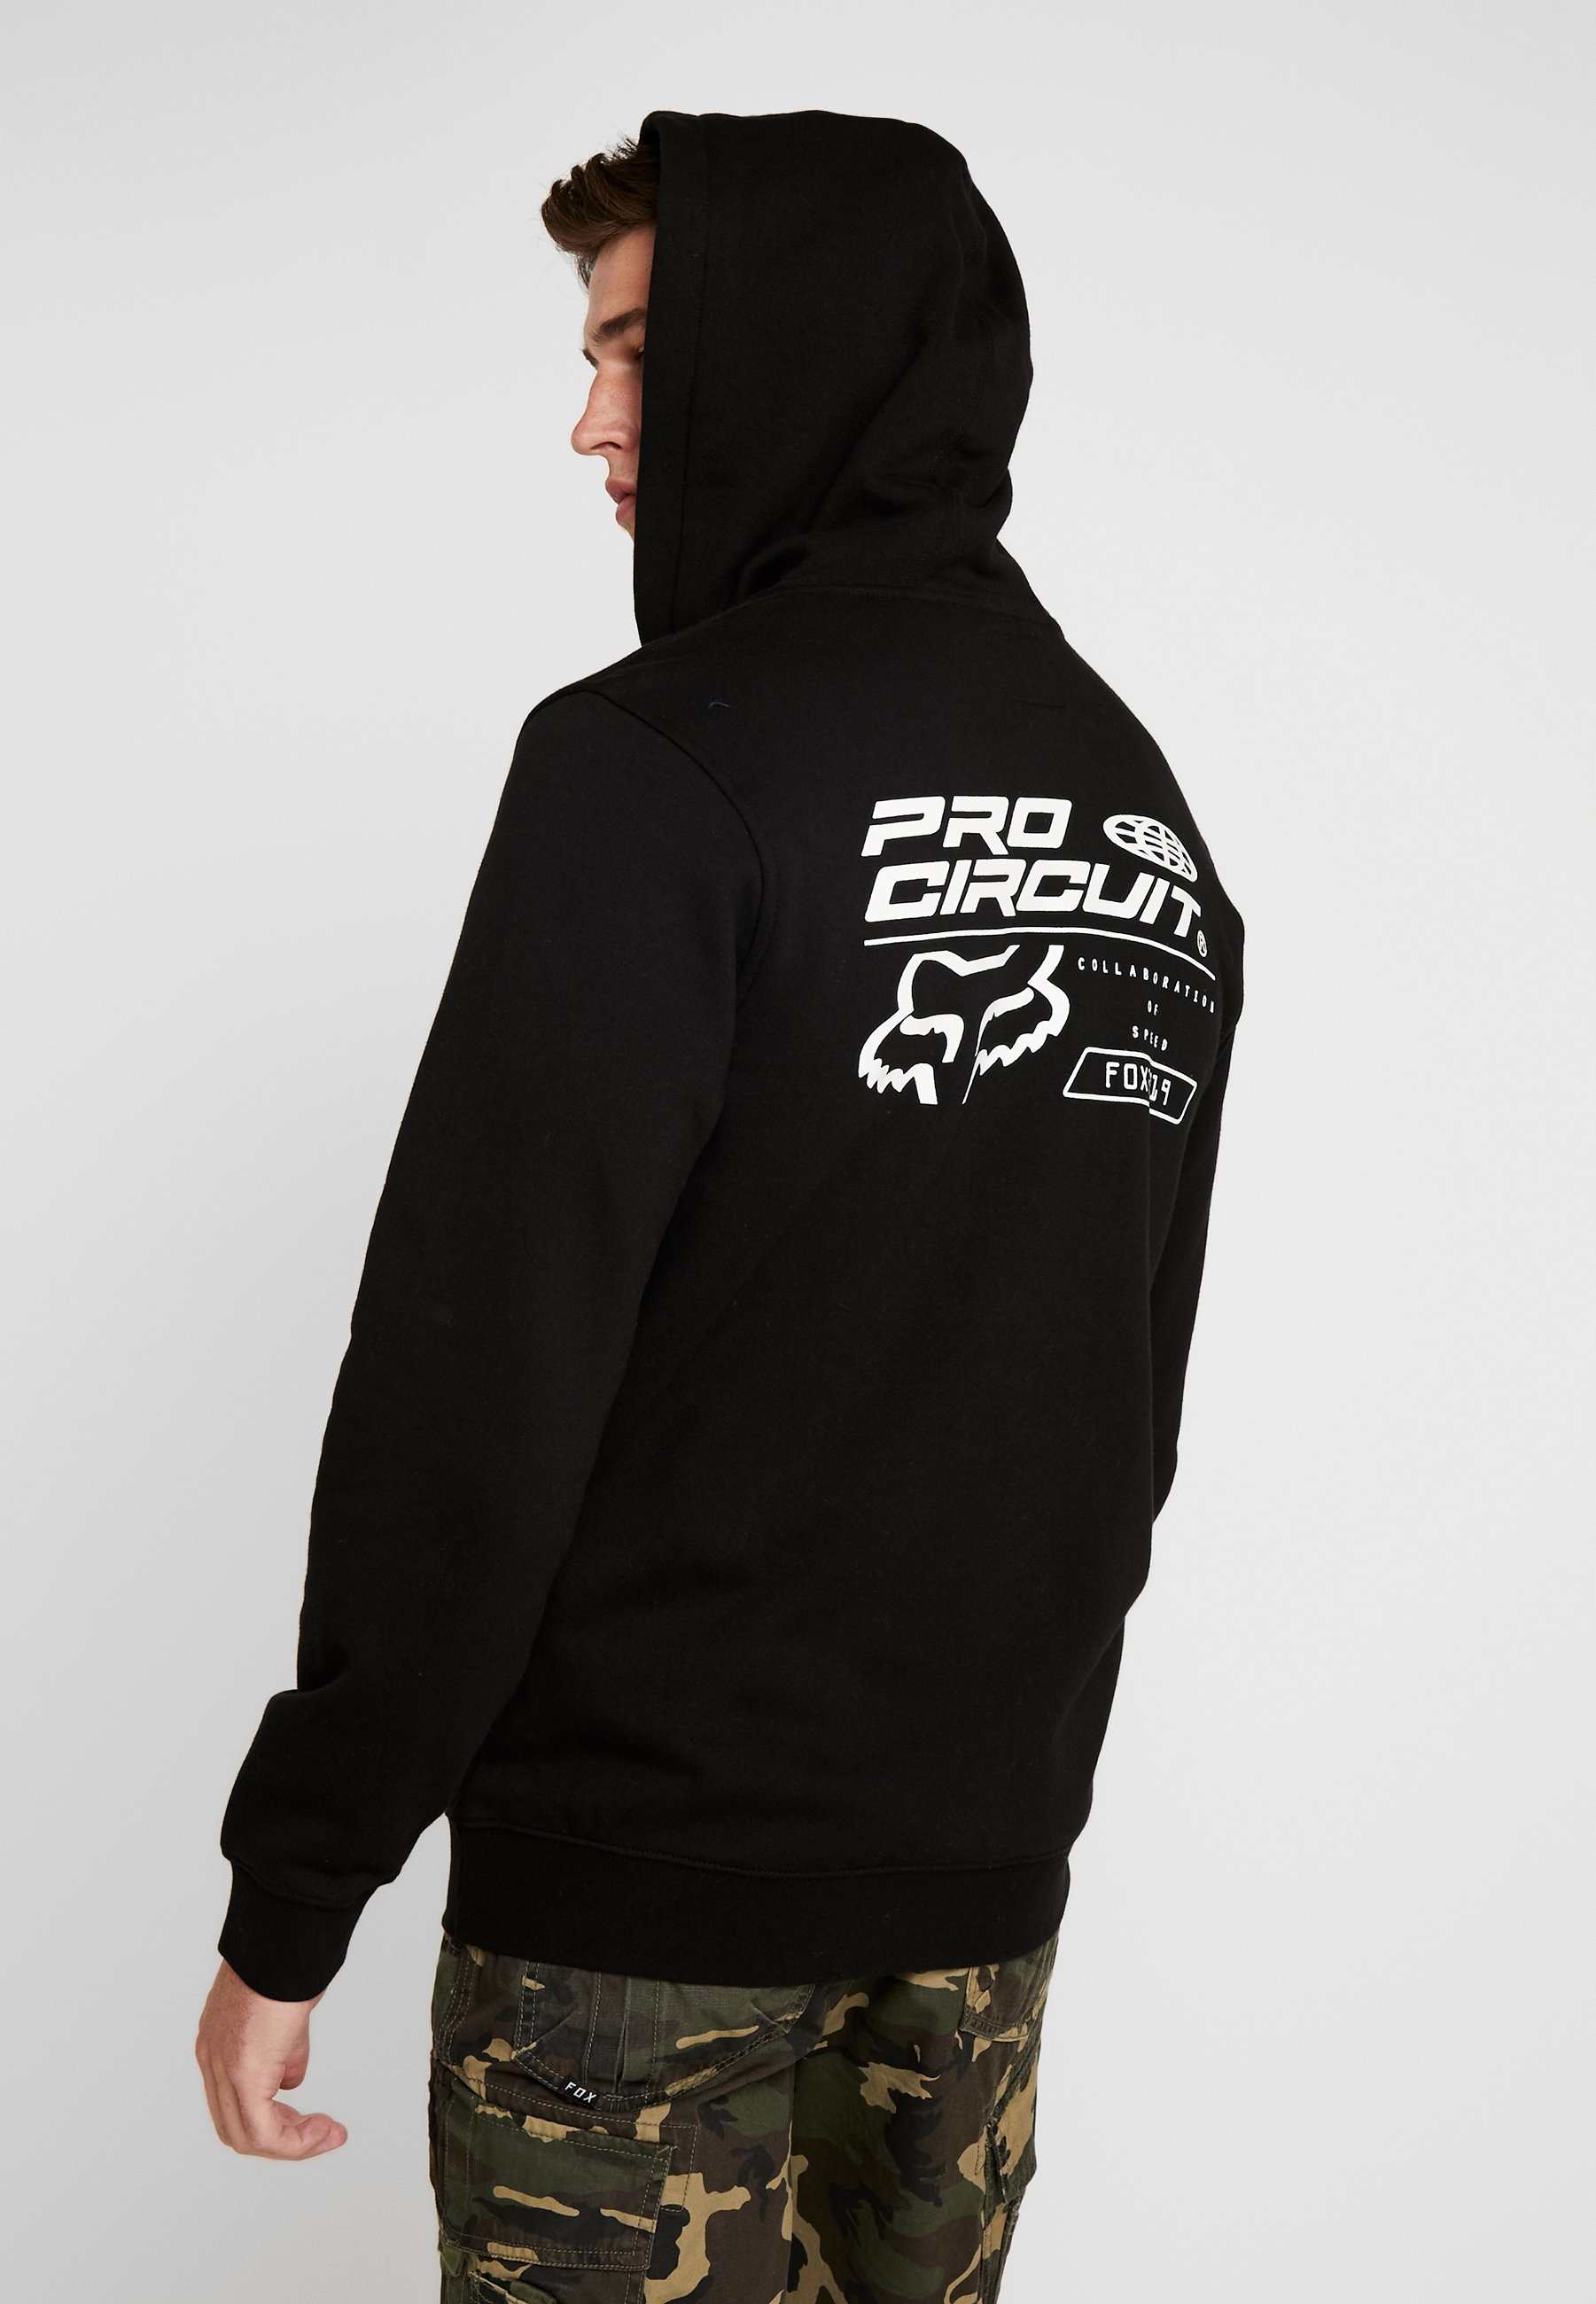 ZipVeste Fox Pro Zippée Black Racing Circuit Sweat En yNnw0vm8O